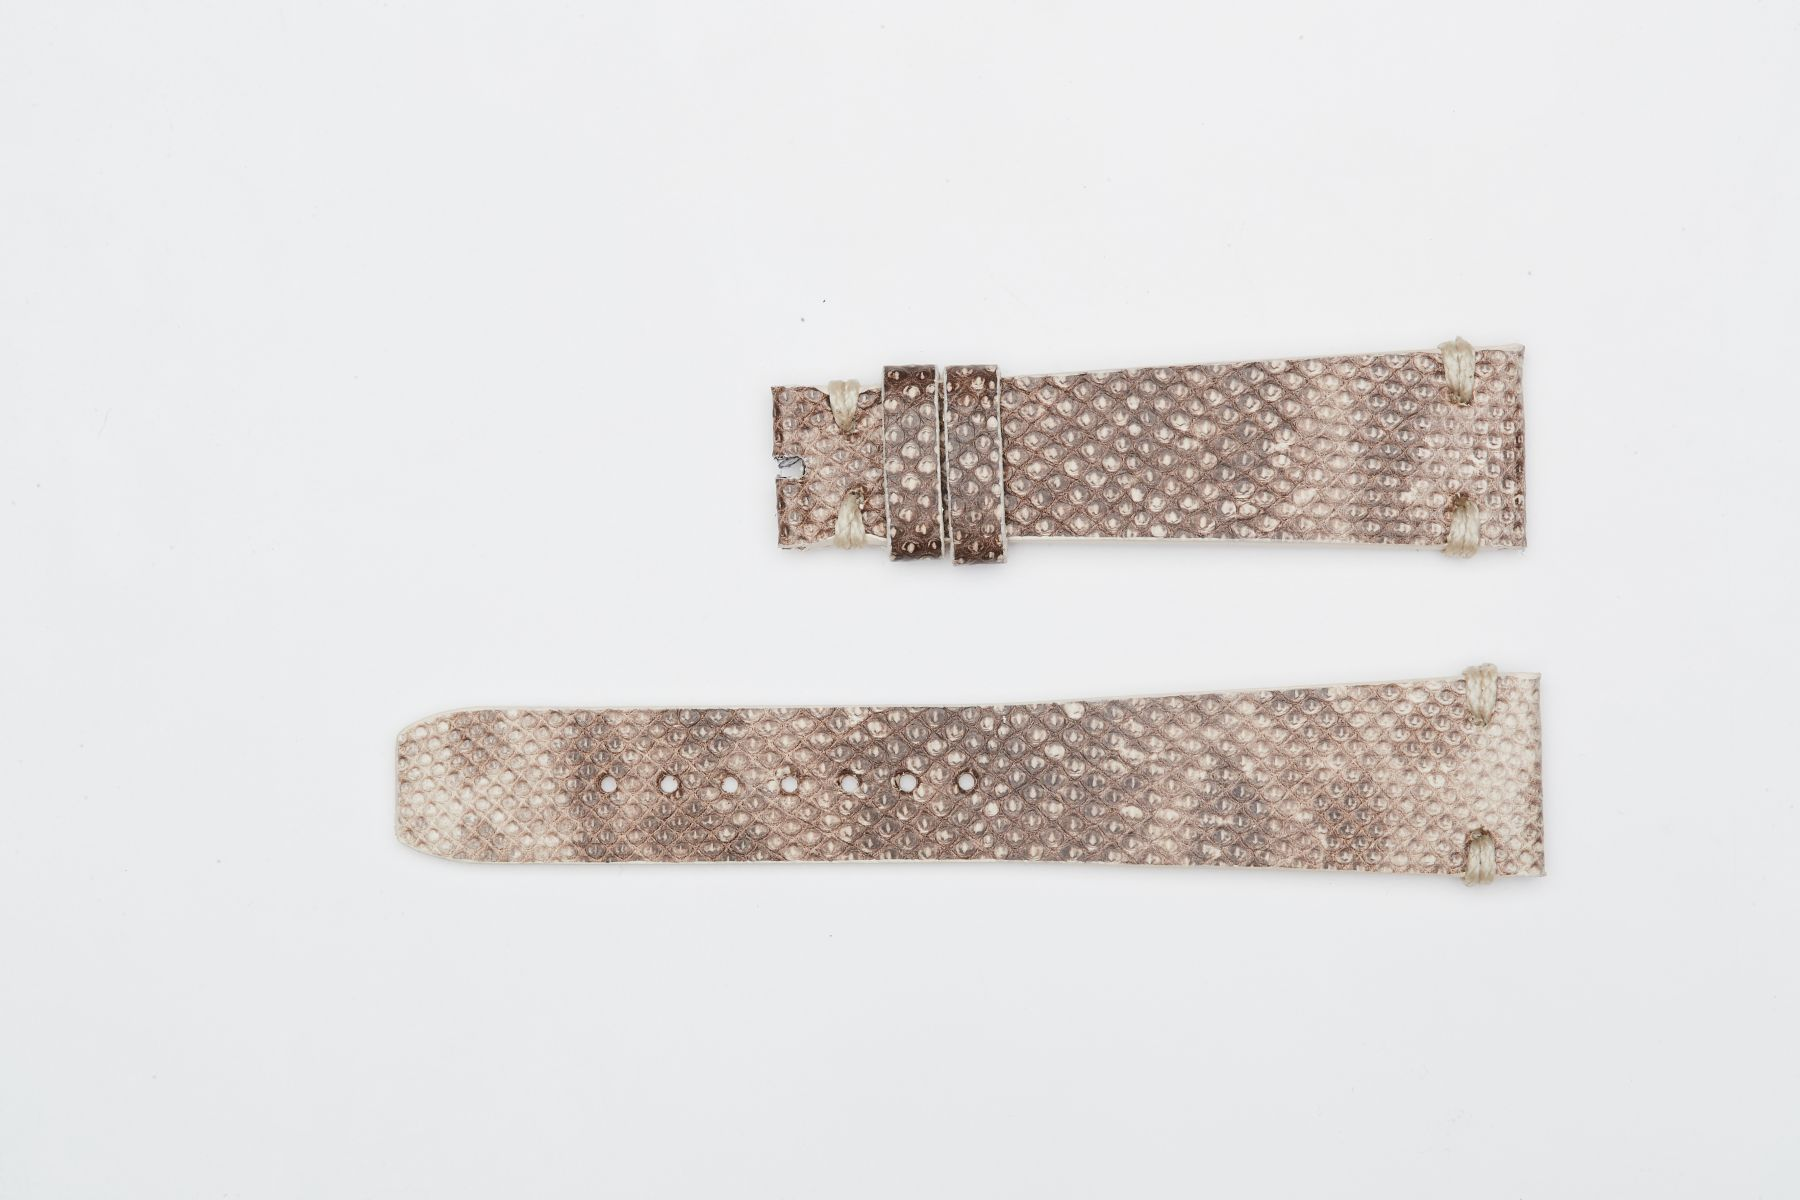 Beige Camouflage Karung Snake Leather strap 20mm